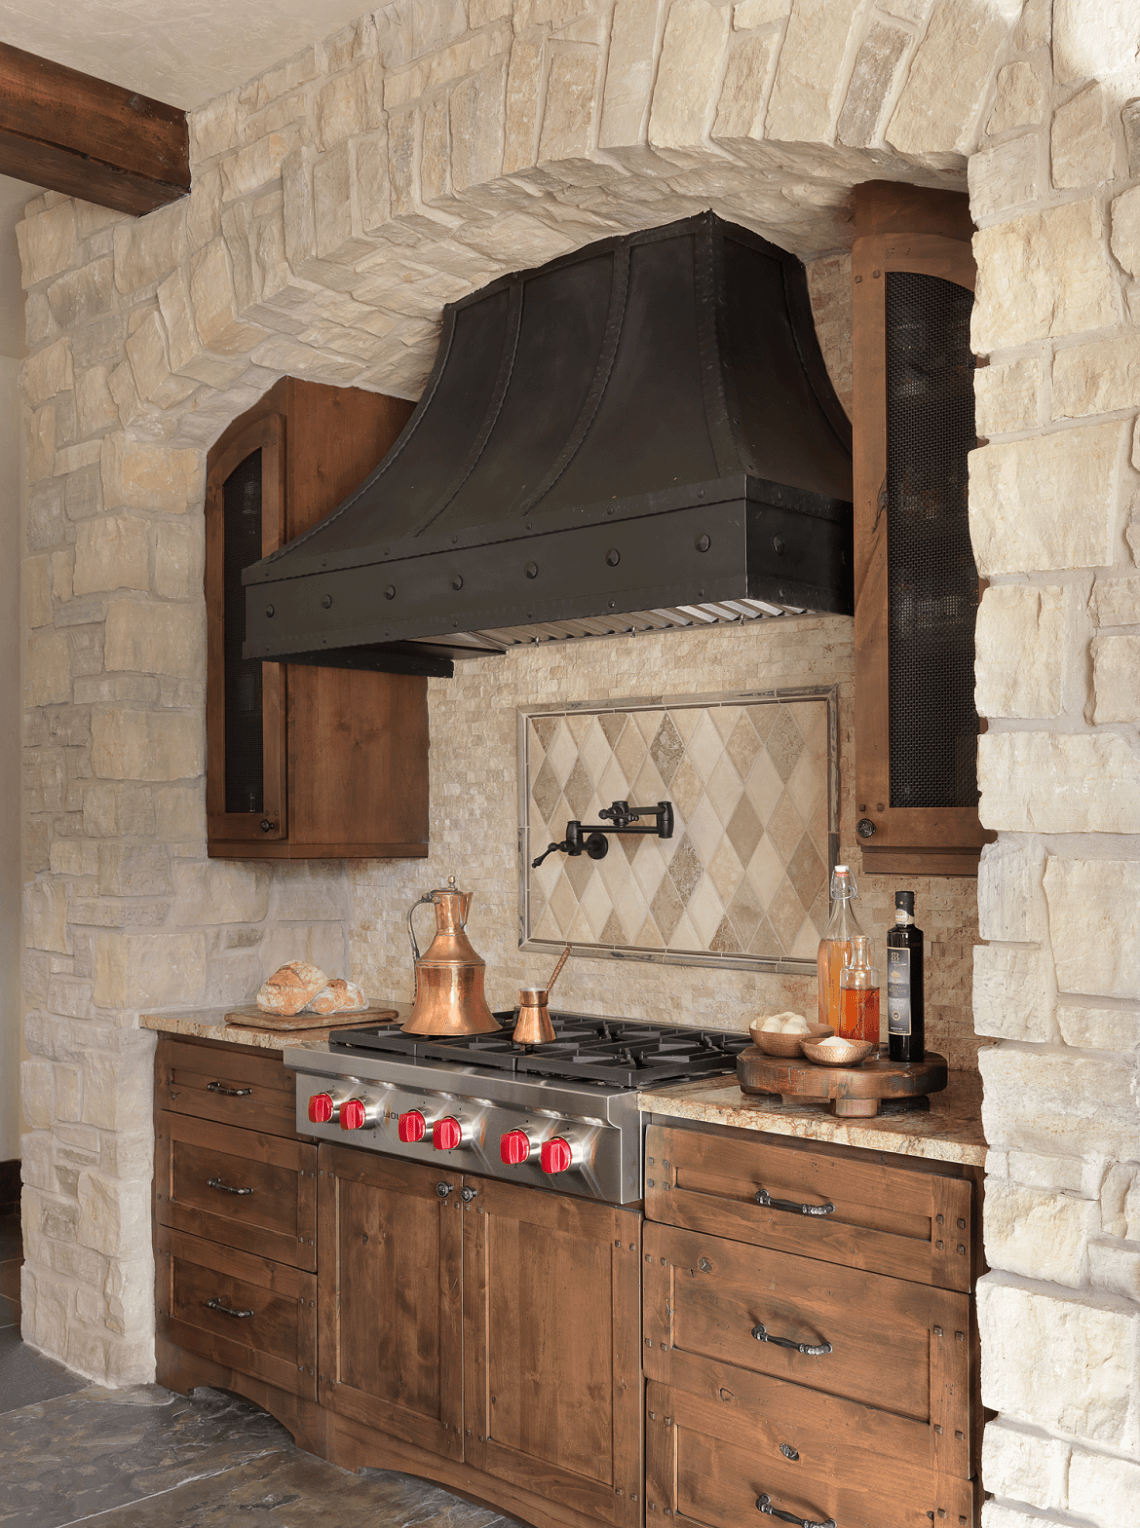 Rustic Kitchen Custom Range Hood Beck Allen Cabinetry